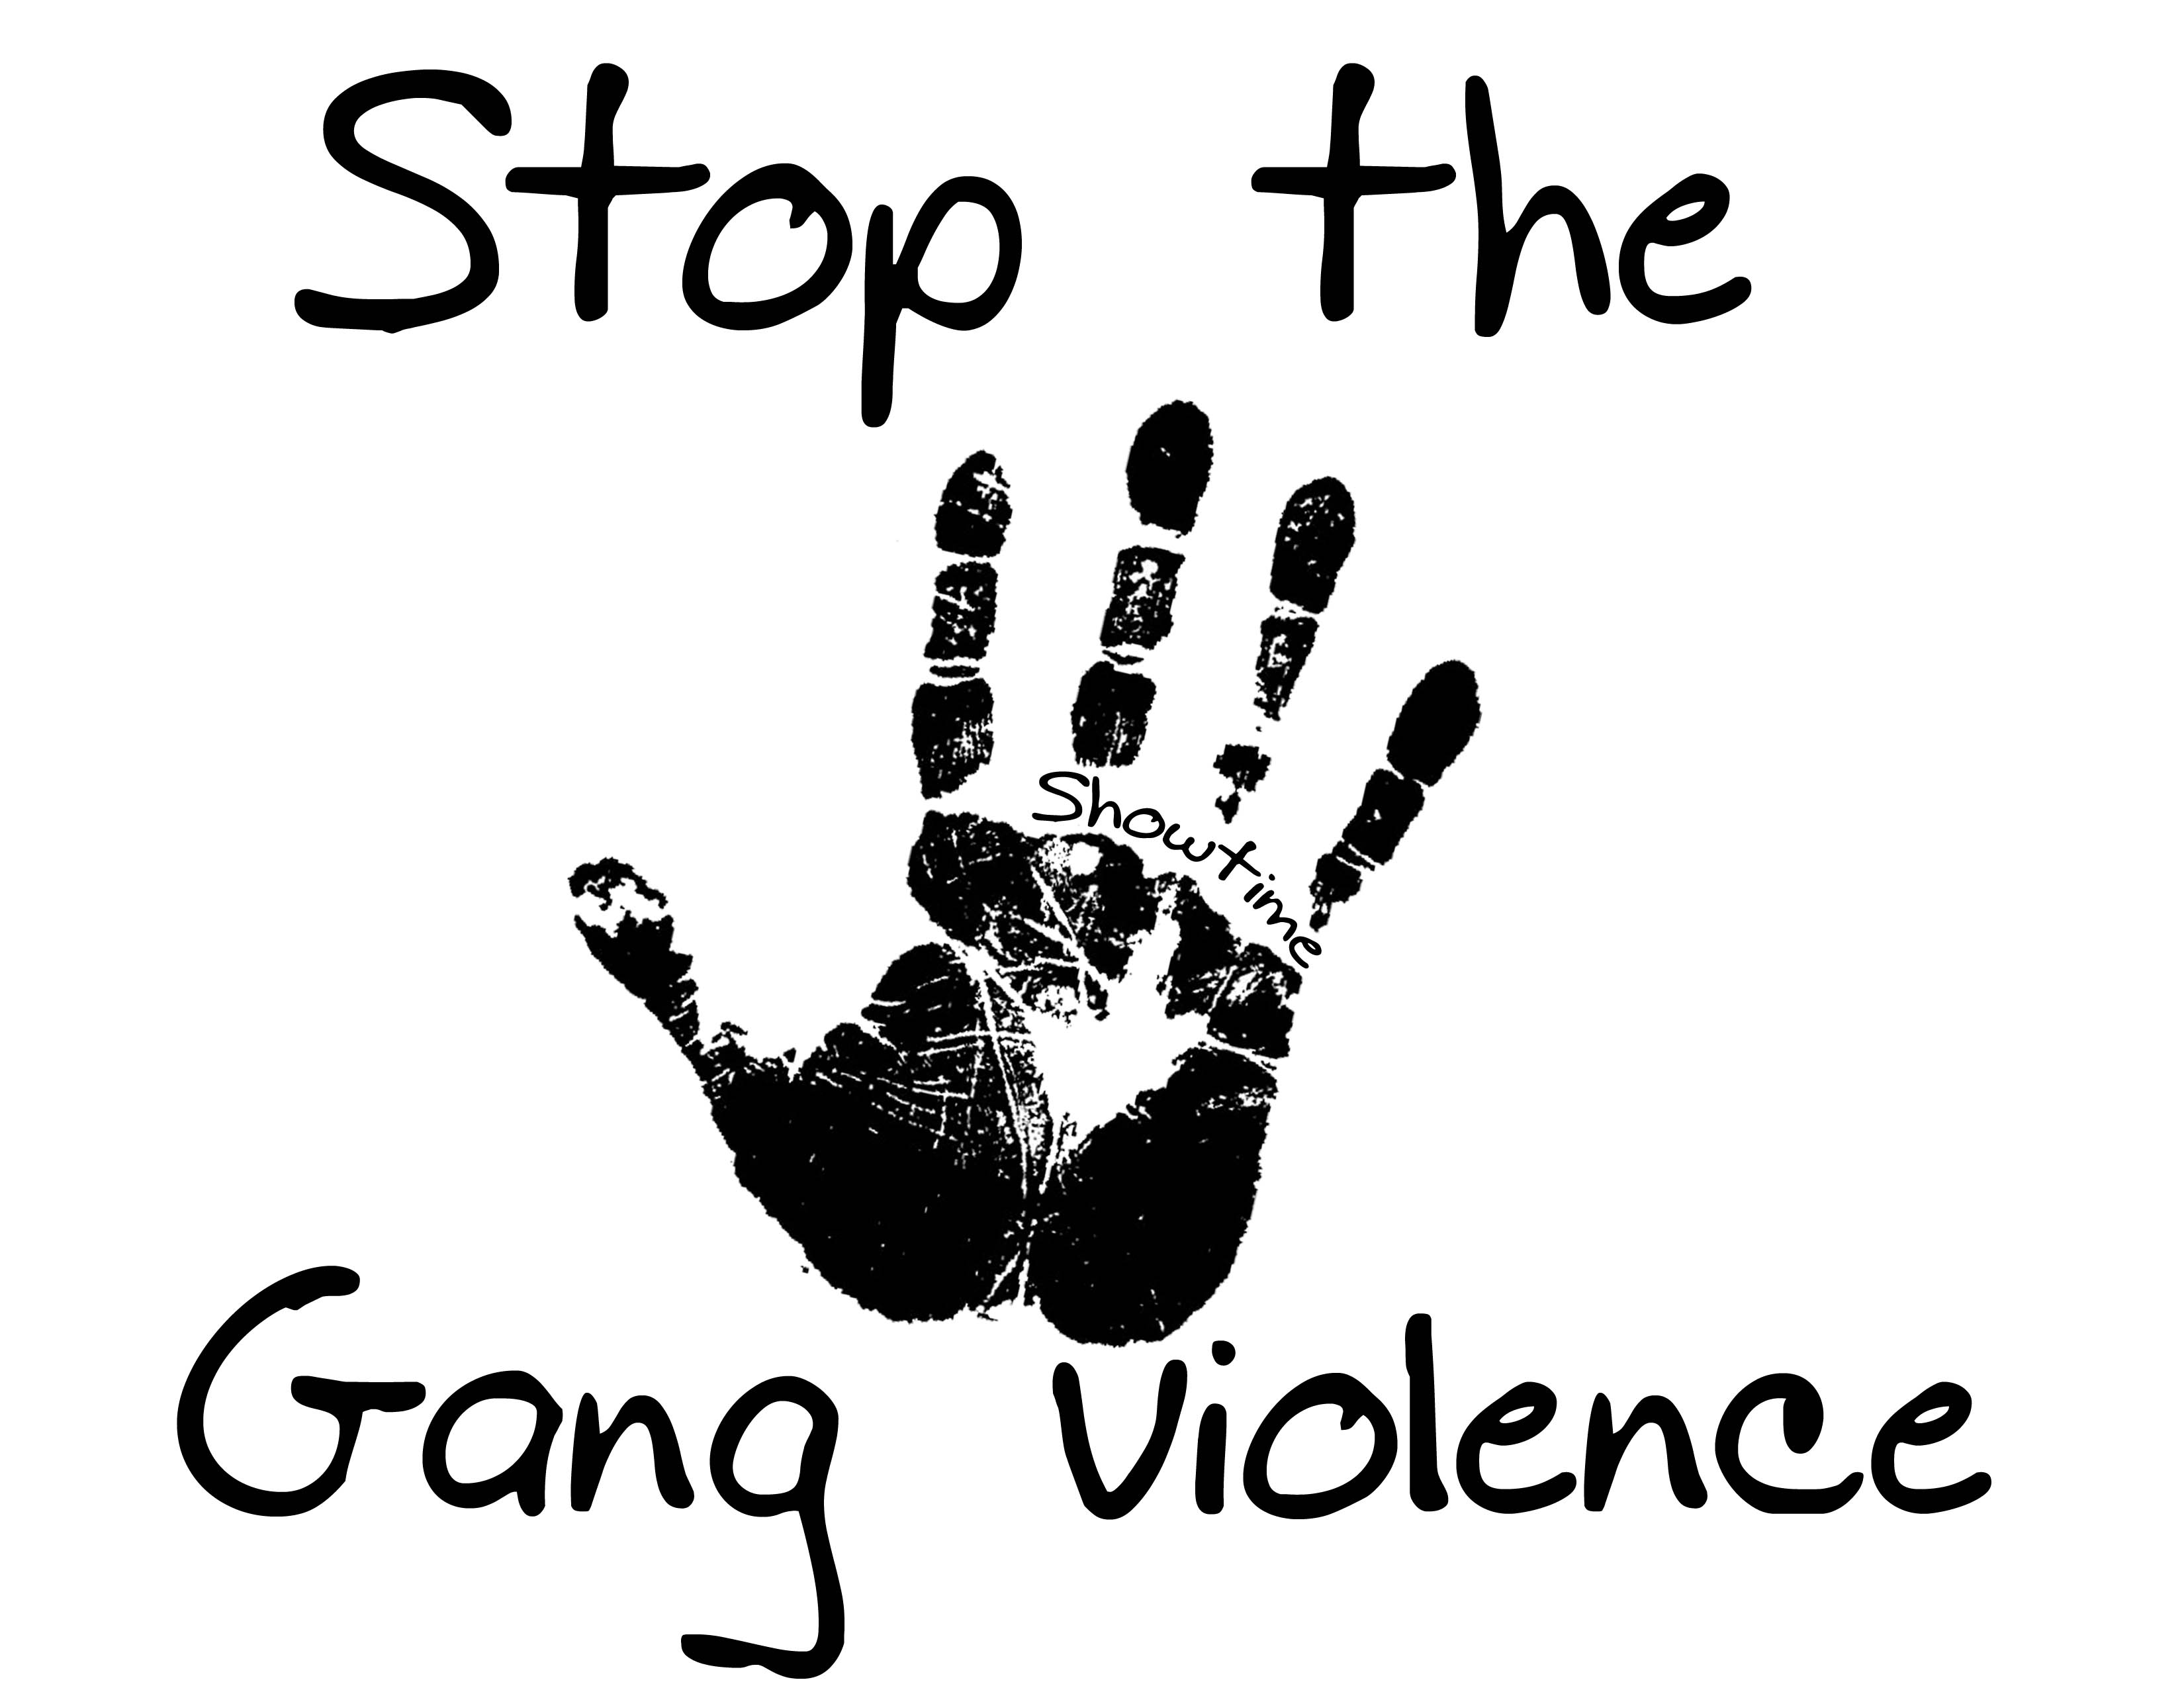 Petition Preventing Youth Gang Violence